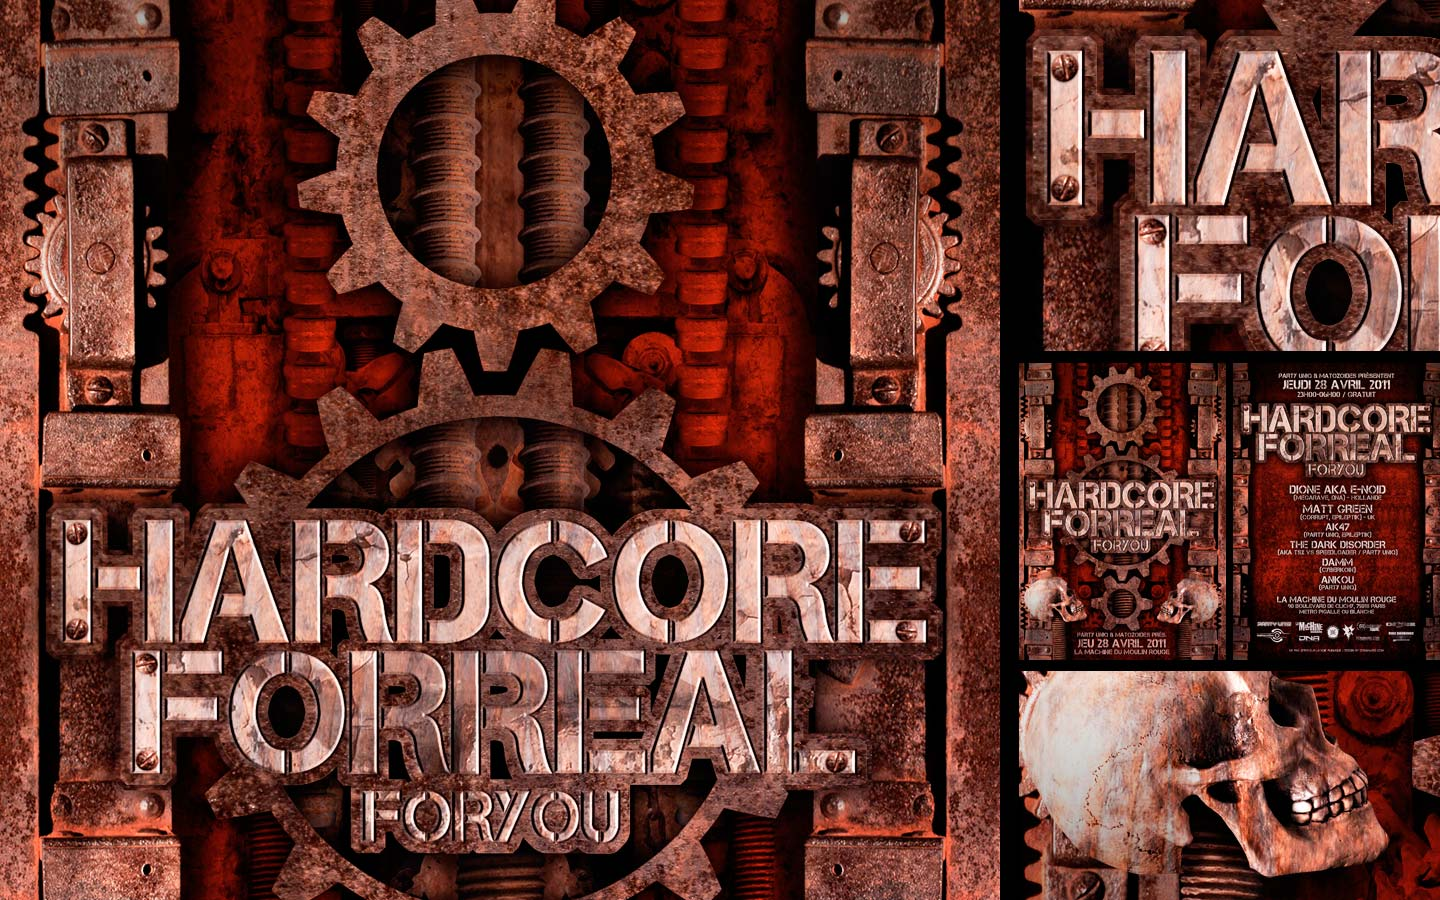 Hardcore For Real - Laurent Lemoigne - Donanubis - Don Anubis - Graphic Design - Flyer - Party Uniq - Matozoides - La Machine du Moulin Rouge - Paris - Art - Music - Electronic - Party - Event - Flyer - Poster - Industrial - Dark - Skull - Bone - Rust - Wheel - Cogwheel - Factory - Mechanical - Machionery - Biomechanic - Biomechanik - Giger - Alternative - Underground - Geneva - Switzerland - Drum and Bass - d'n'b - Hard Drum - Hardcore - Gabber - Crossbreed - Dione aka E-Noid / Megarave / DNA - Matt Green / Corrupt / Epileptik - AK47 / PArty Uniq / Epileptik - The Dark Disorder / aka TSX Vs Speedloader / Party Uniq - Damm / Cyberkoin - Anikou - Metal - Hard - Rock - Death - Band - Illustration